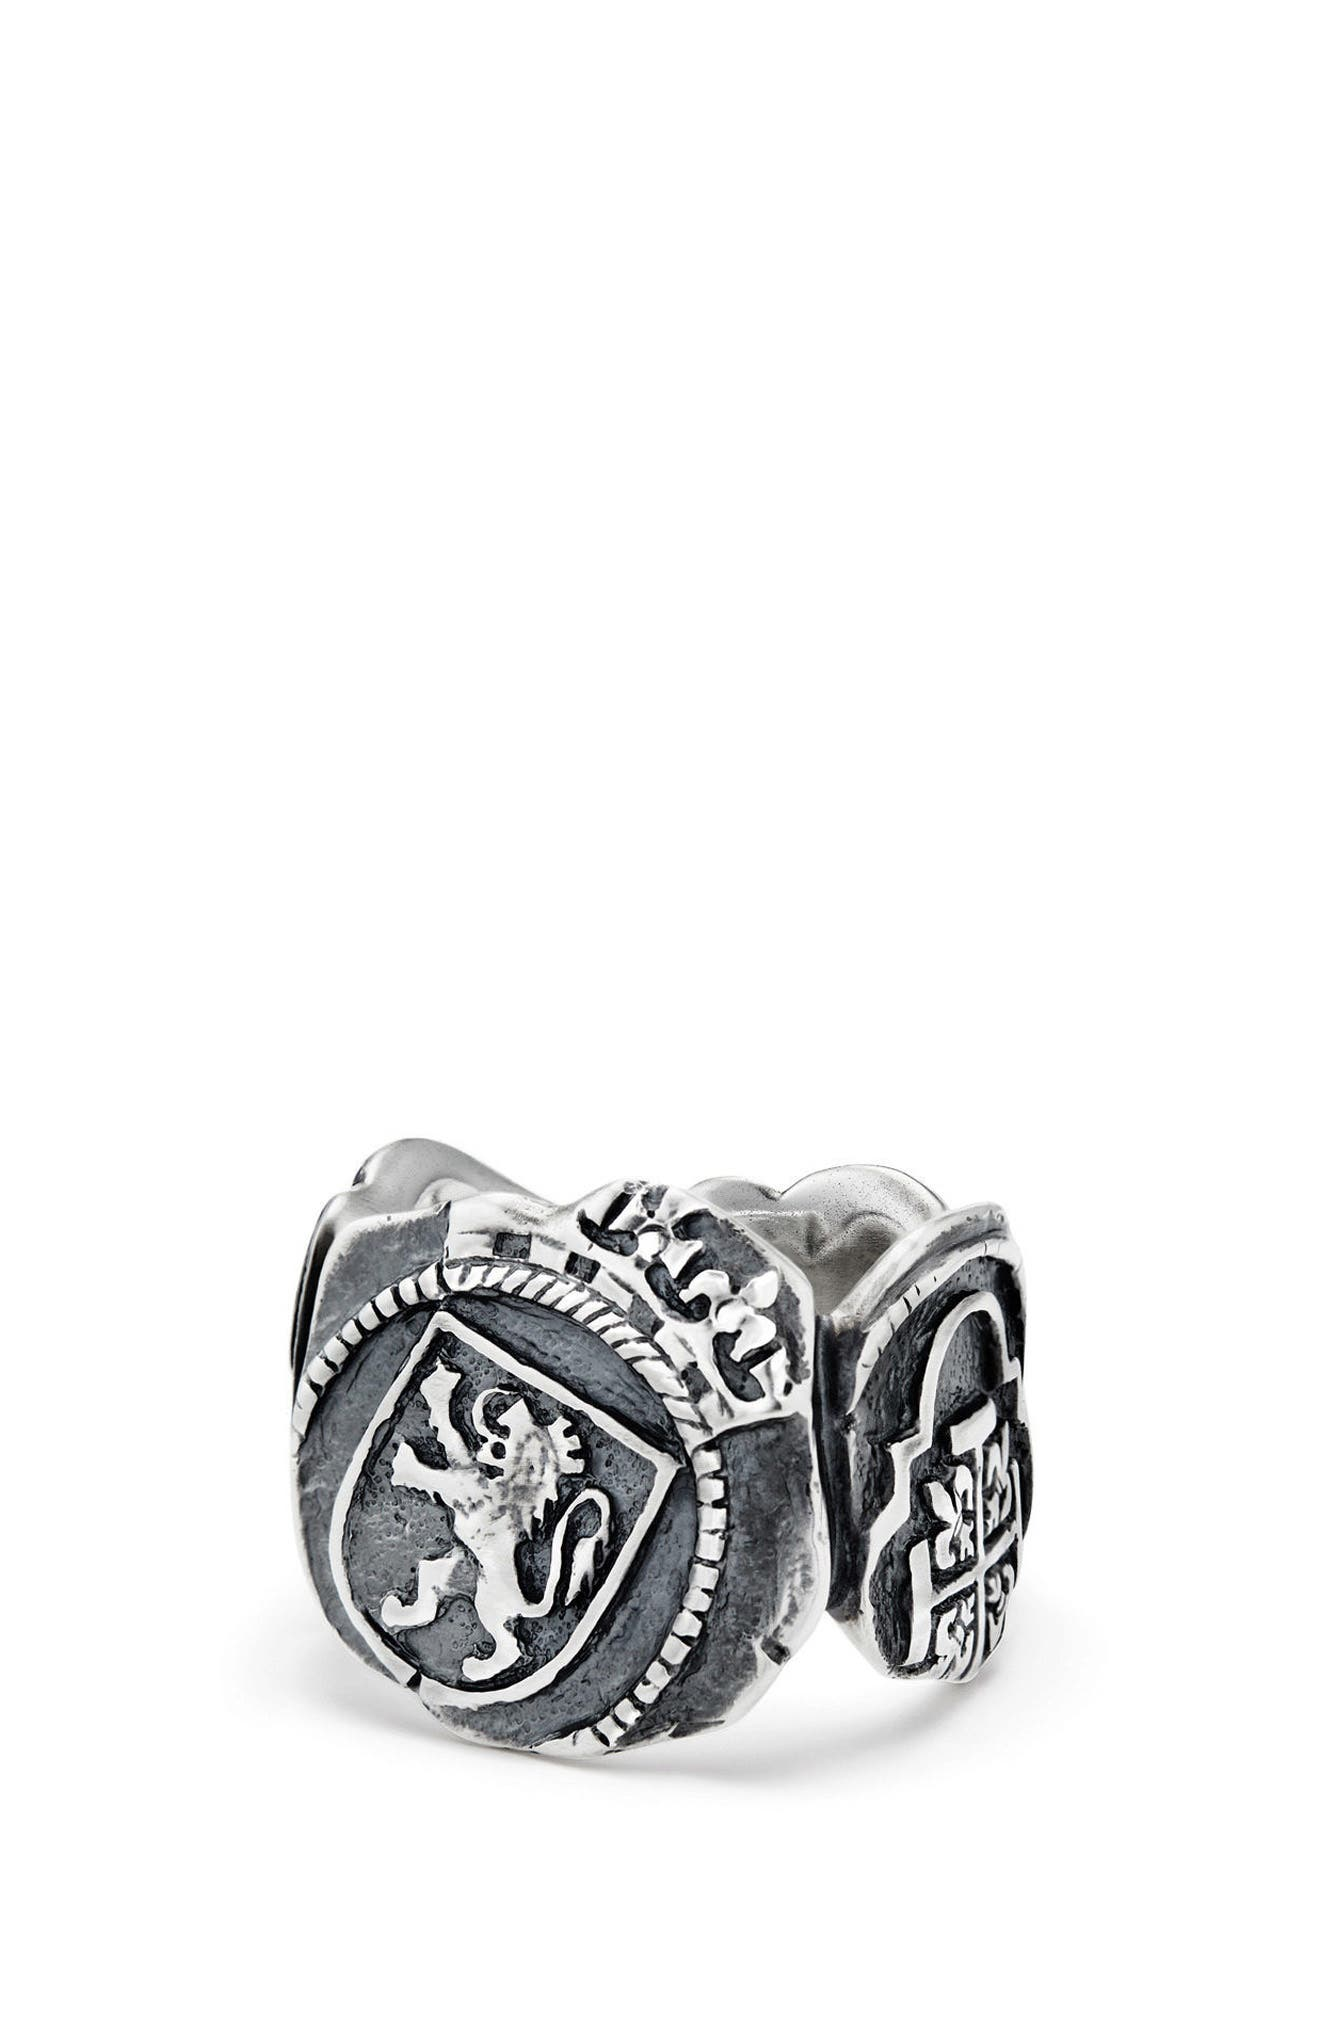 Shipwreck Signet Coin Ring, 20mm,                             Main thumbnail 1, color,                             SILVER